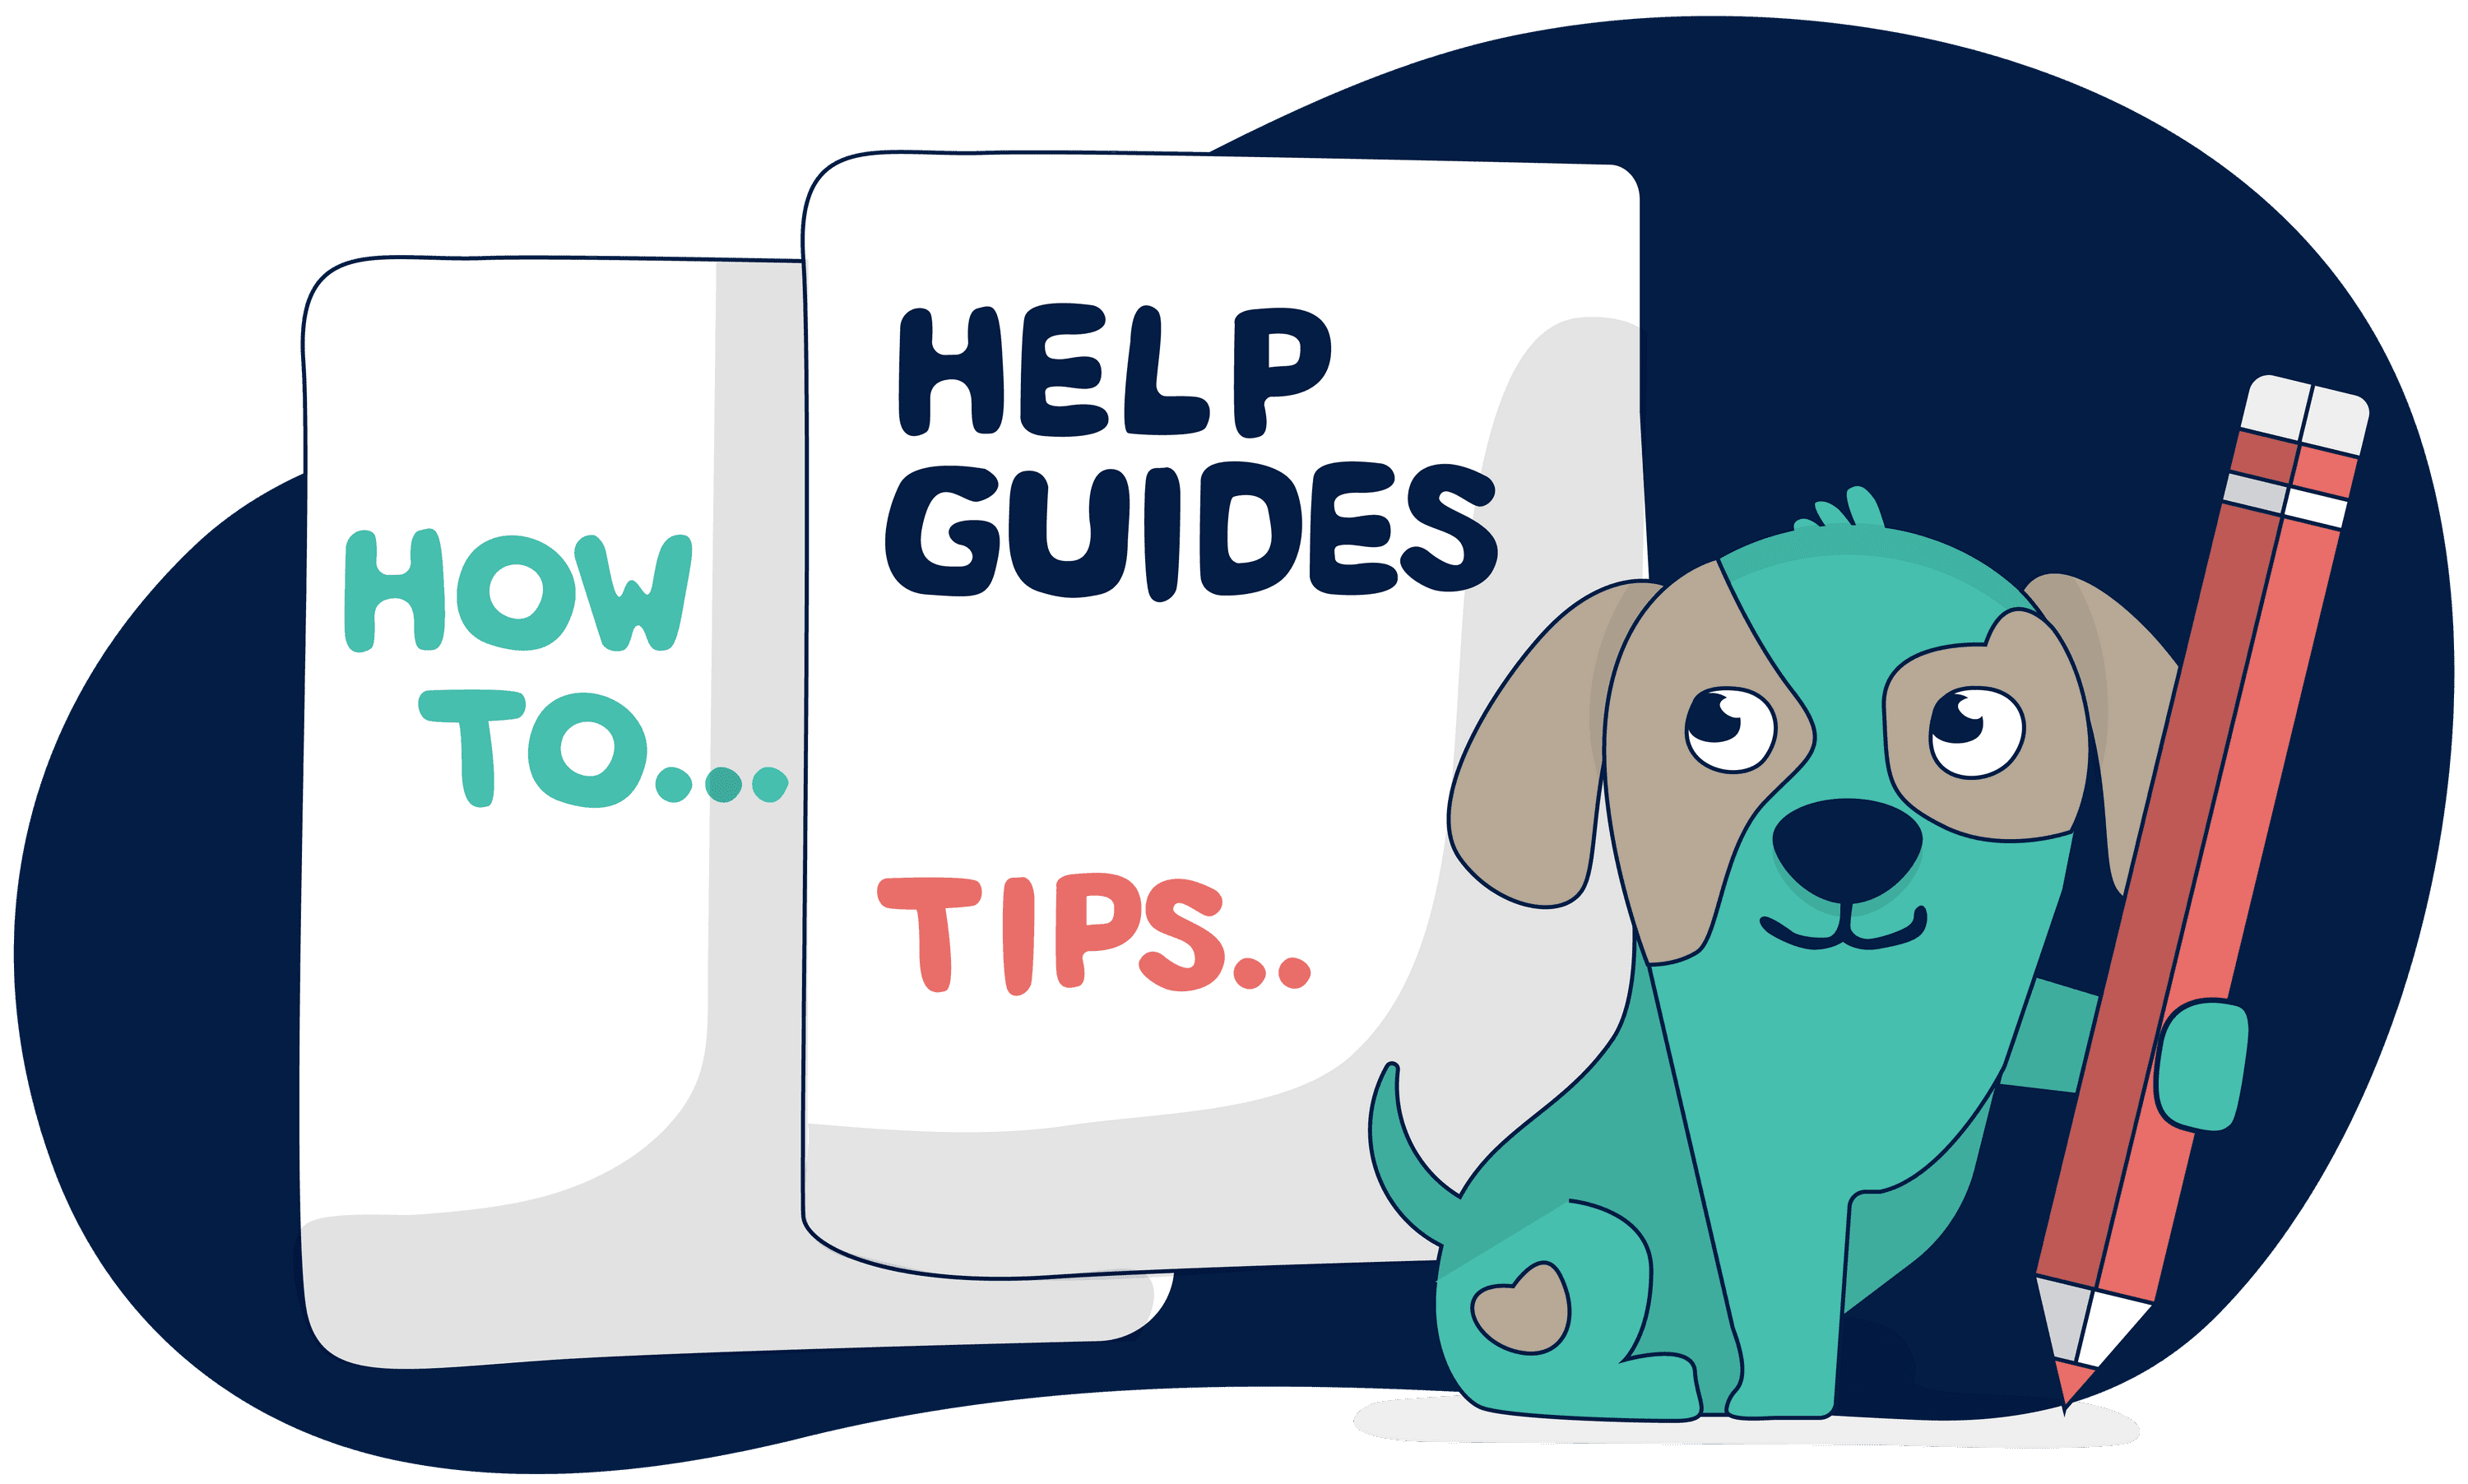 Helpguides